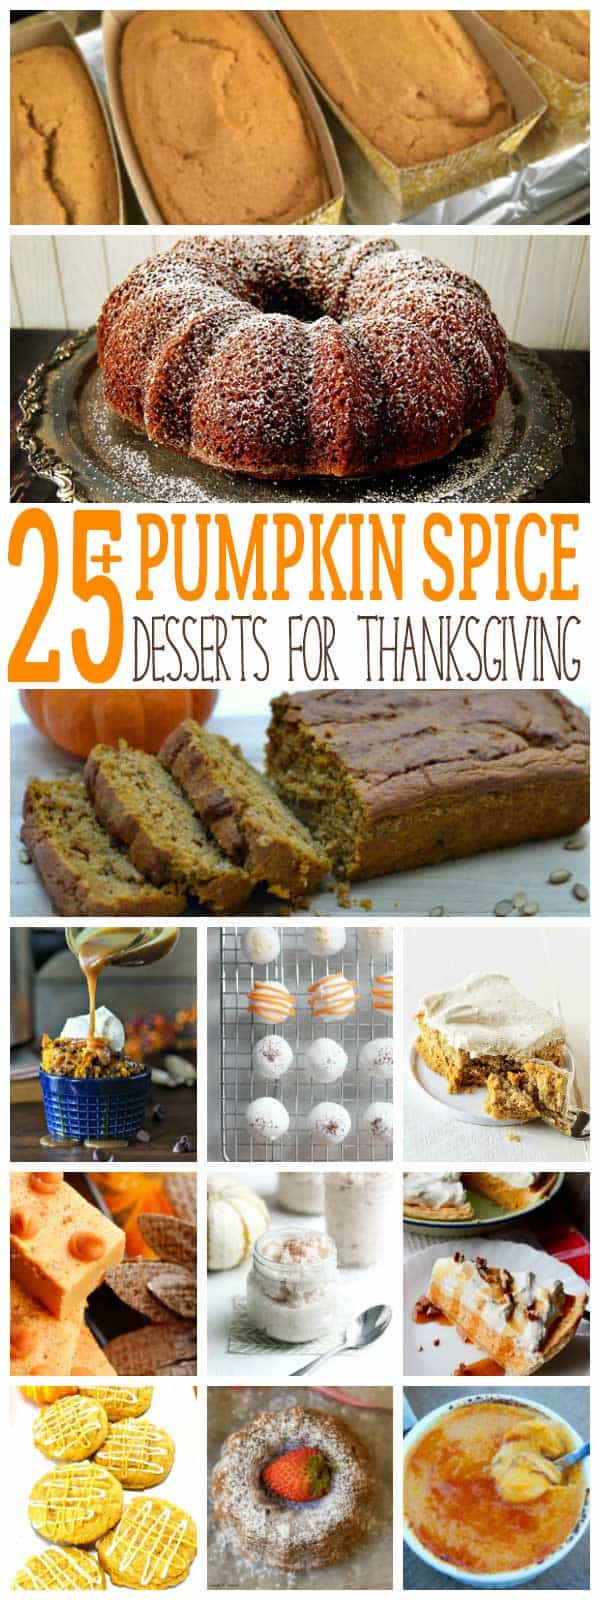 Get stocked up on Pumpkin Spice and Puree as these delicious dessert recipes will inspire you to bake and help you meal plan for Thanksgiving and fall.